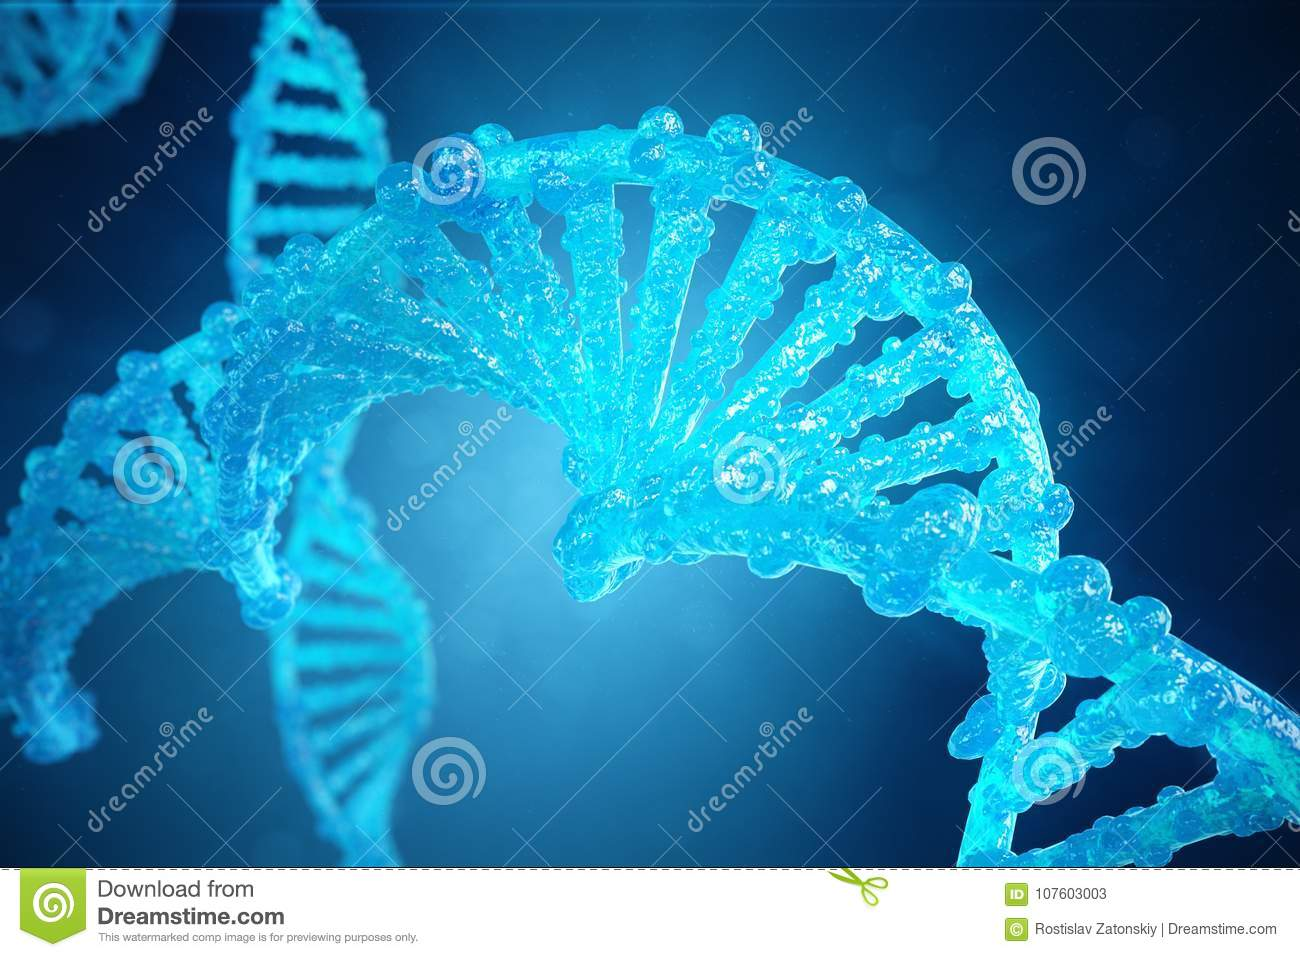 3D Illustration Helix DNA molecule with modified genes. Correcting mutation by genetic engineering. Concept Molecular